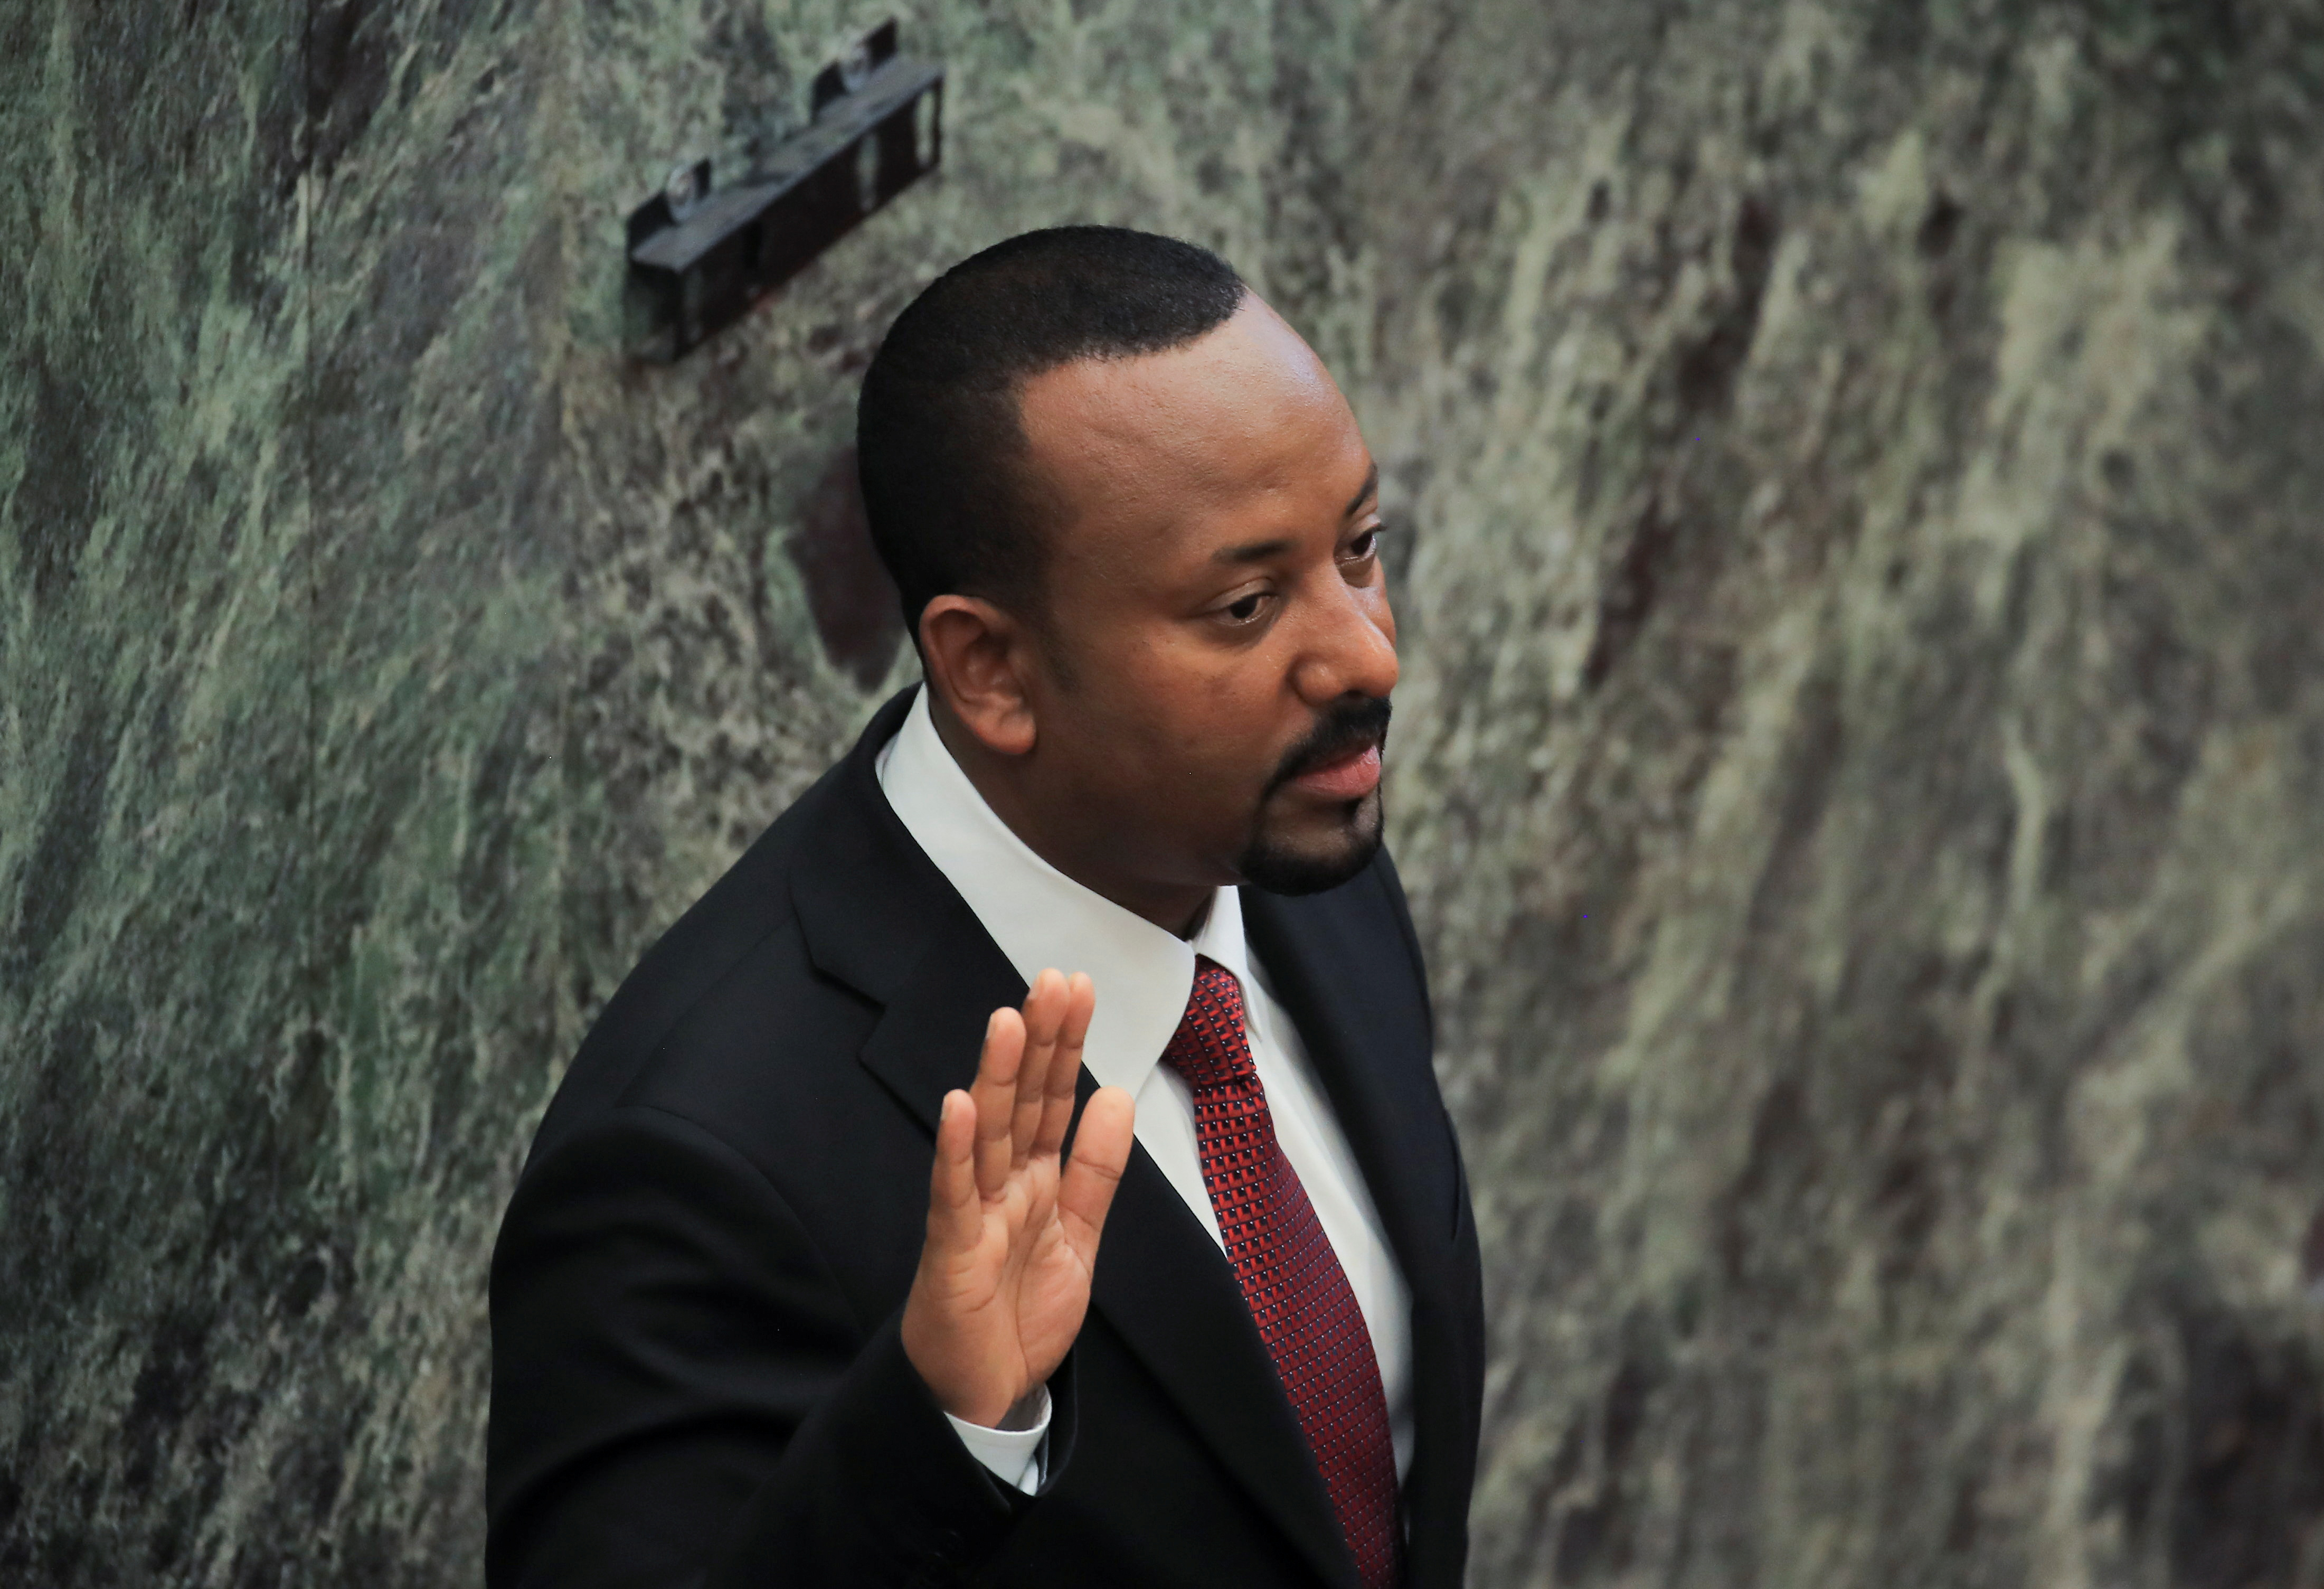 Ethiopia's Prime Minister Abiy Ahmed takes oath during his incumbent ceremony at the Parliament building in Addis Ababa, Ethiopia October 4, 2021. REUTERS/Tiksa Negeri